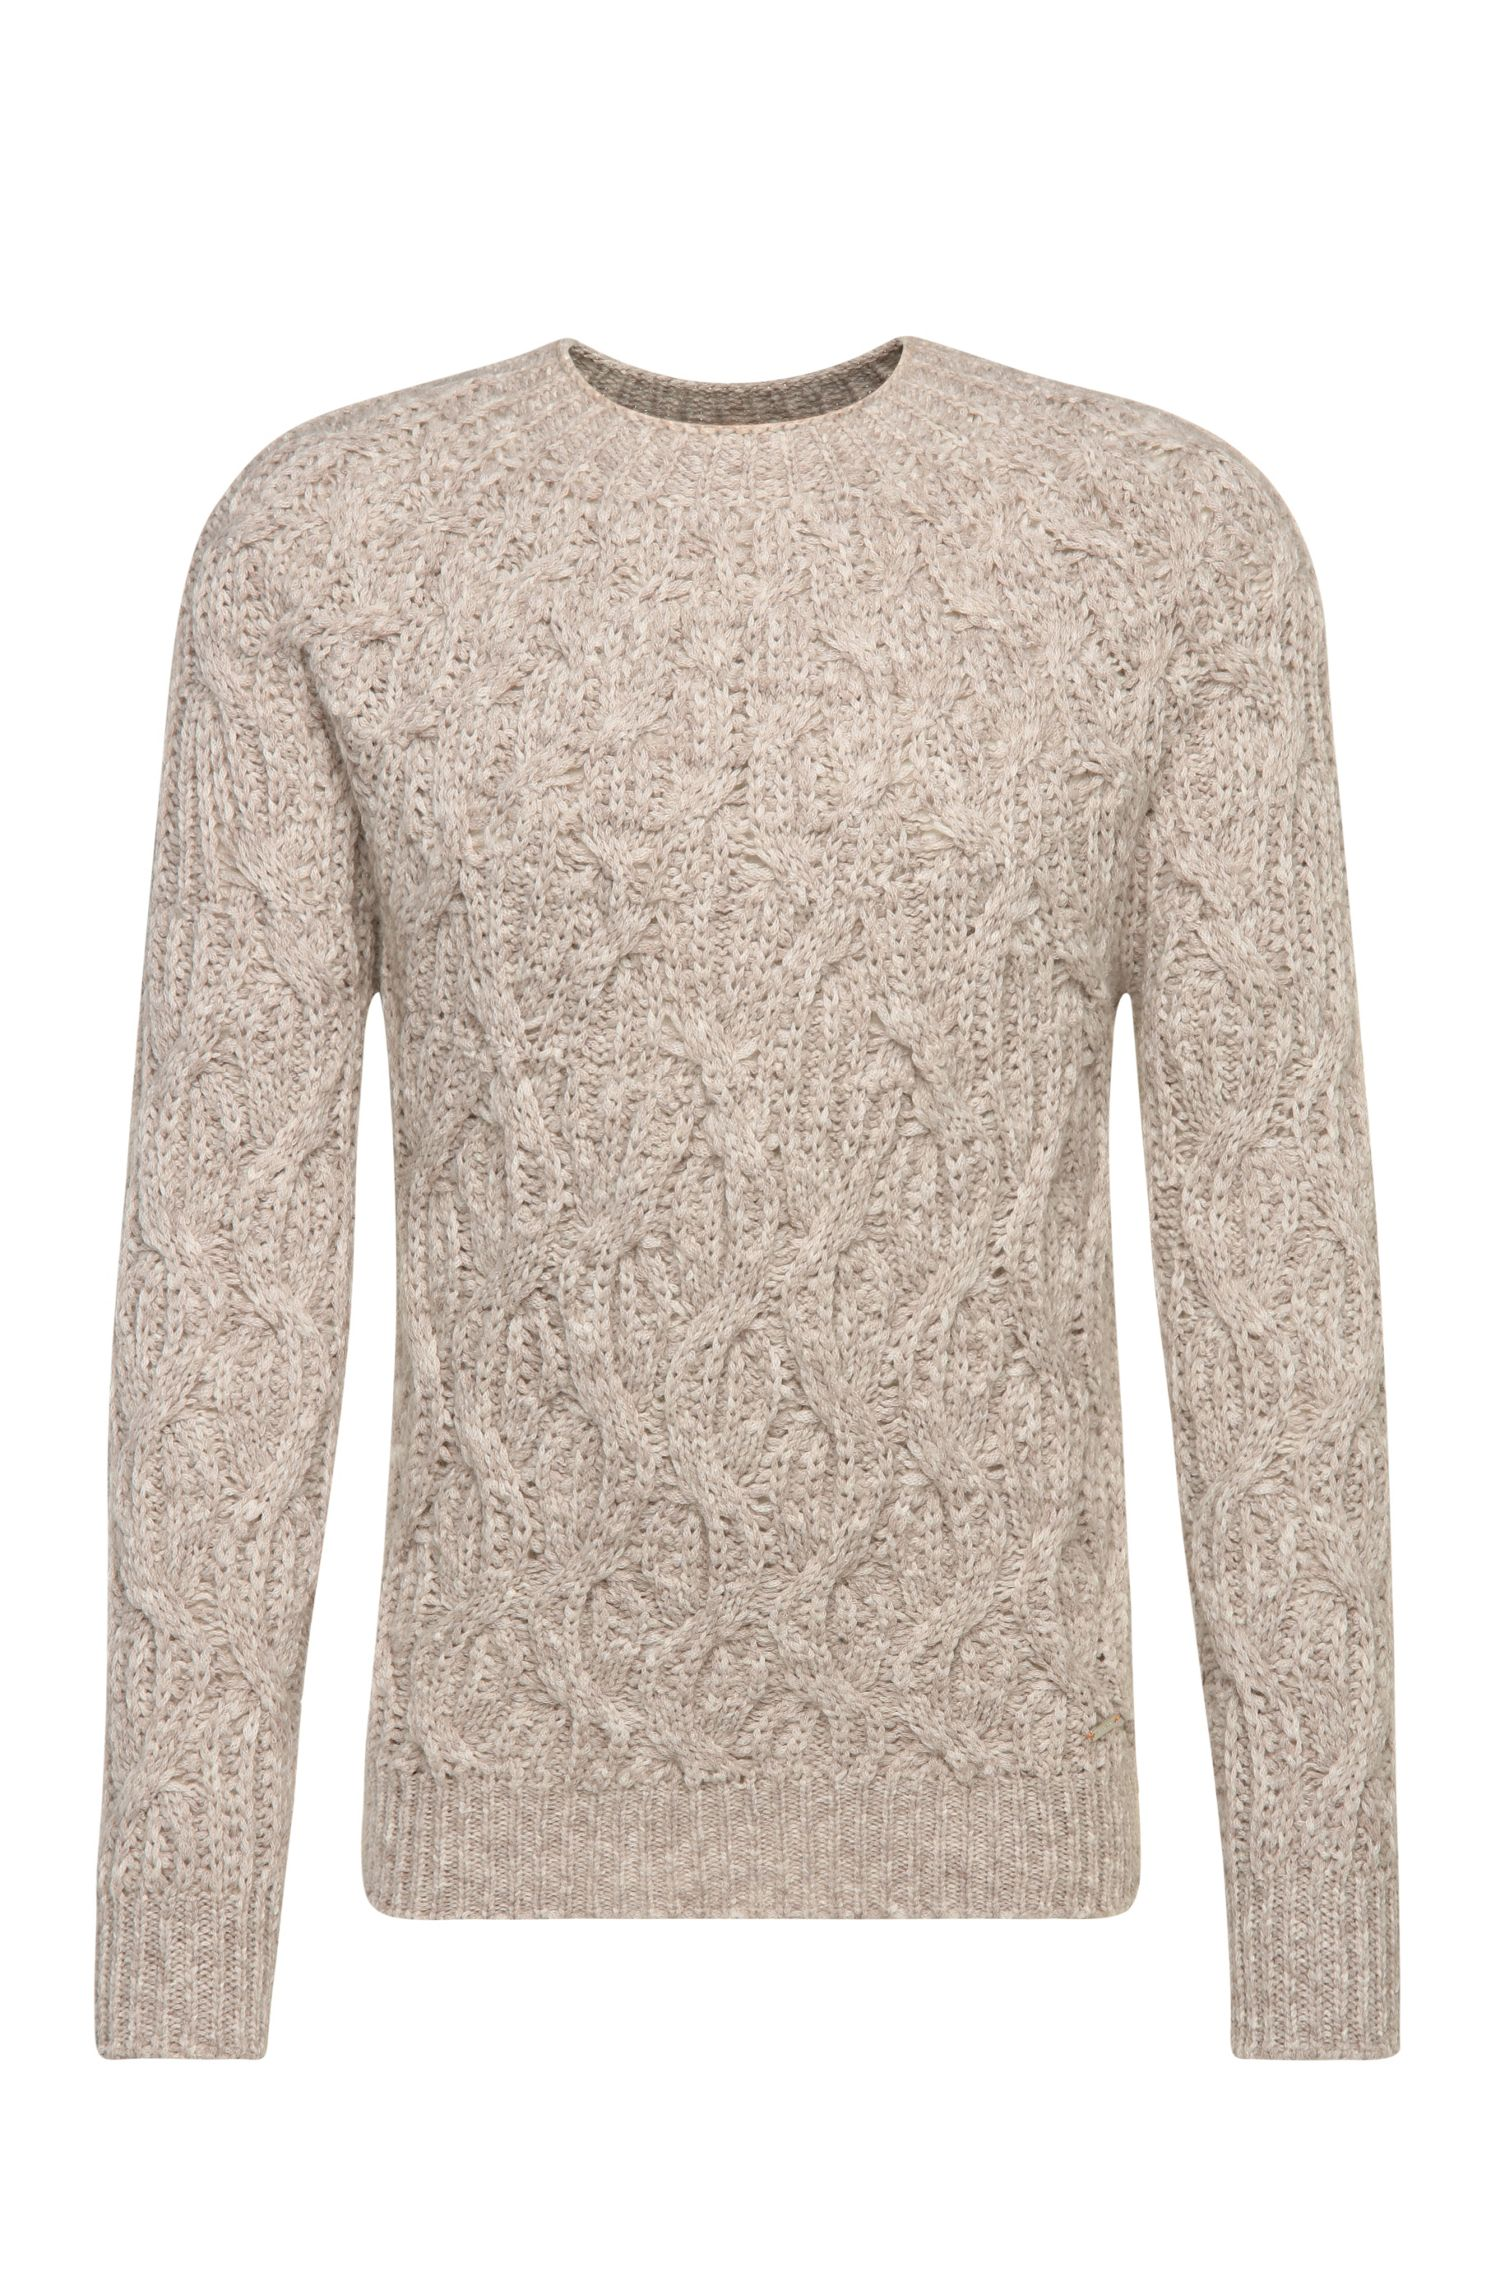 Slim-fit sweater in wool blend with patterned knit: 'Kradull'